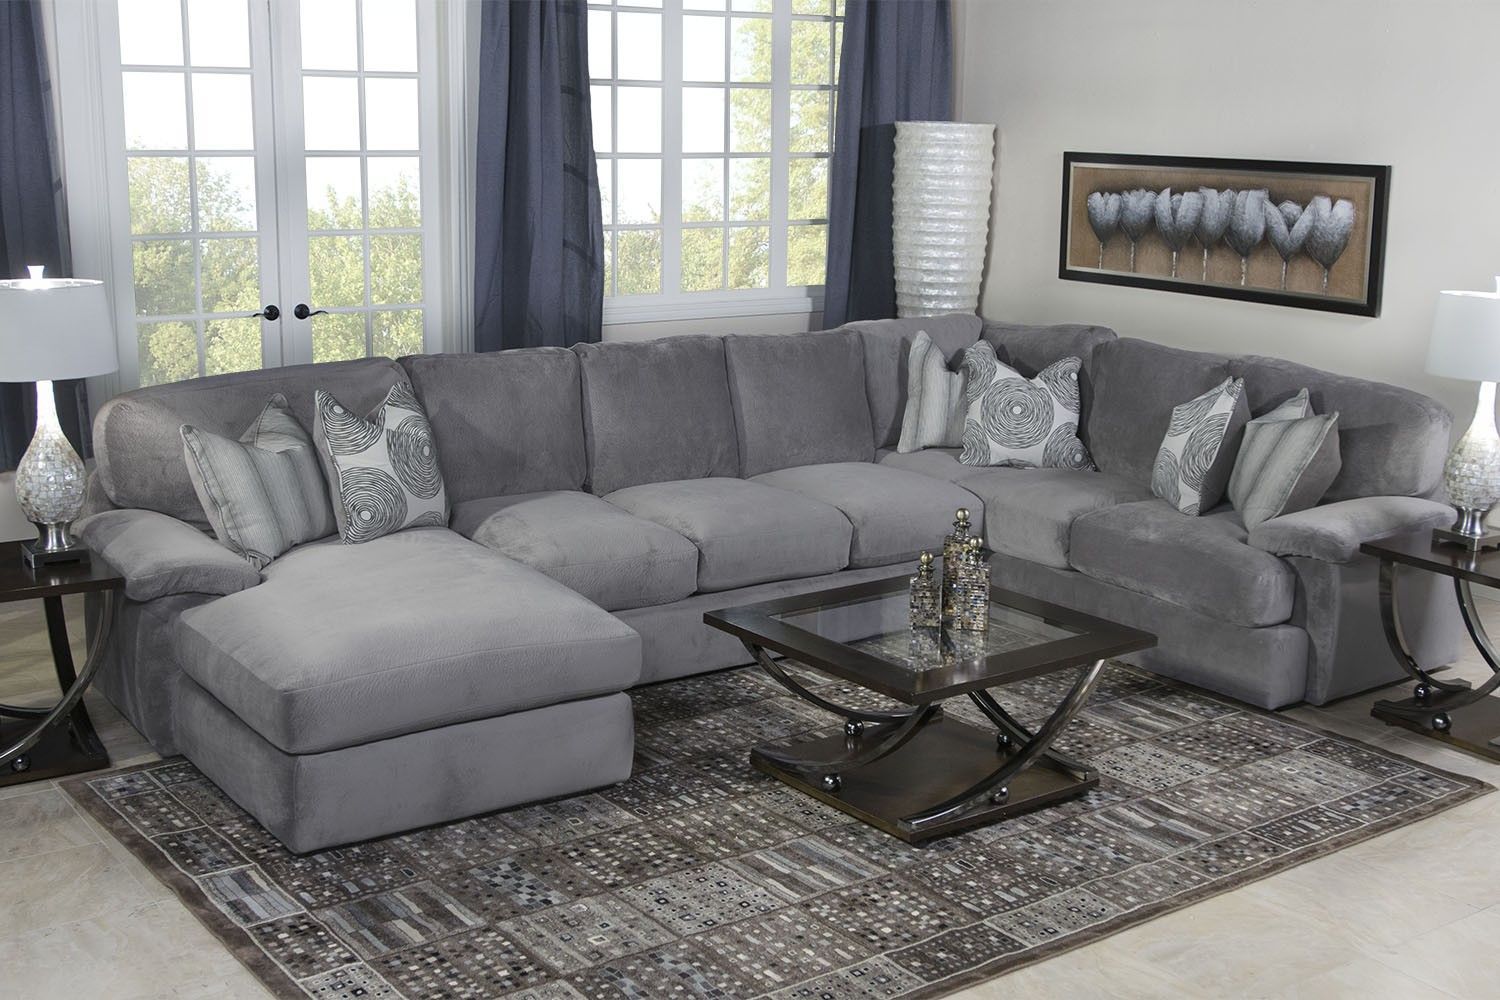 Key west sectional living room in gray living room mor for Couch for drawing room